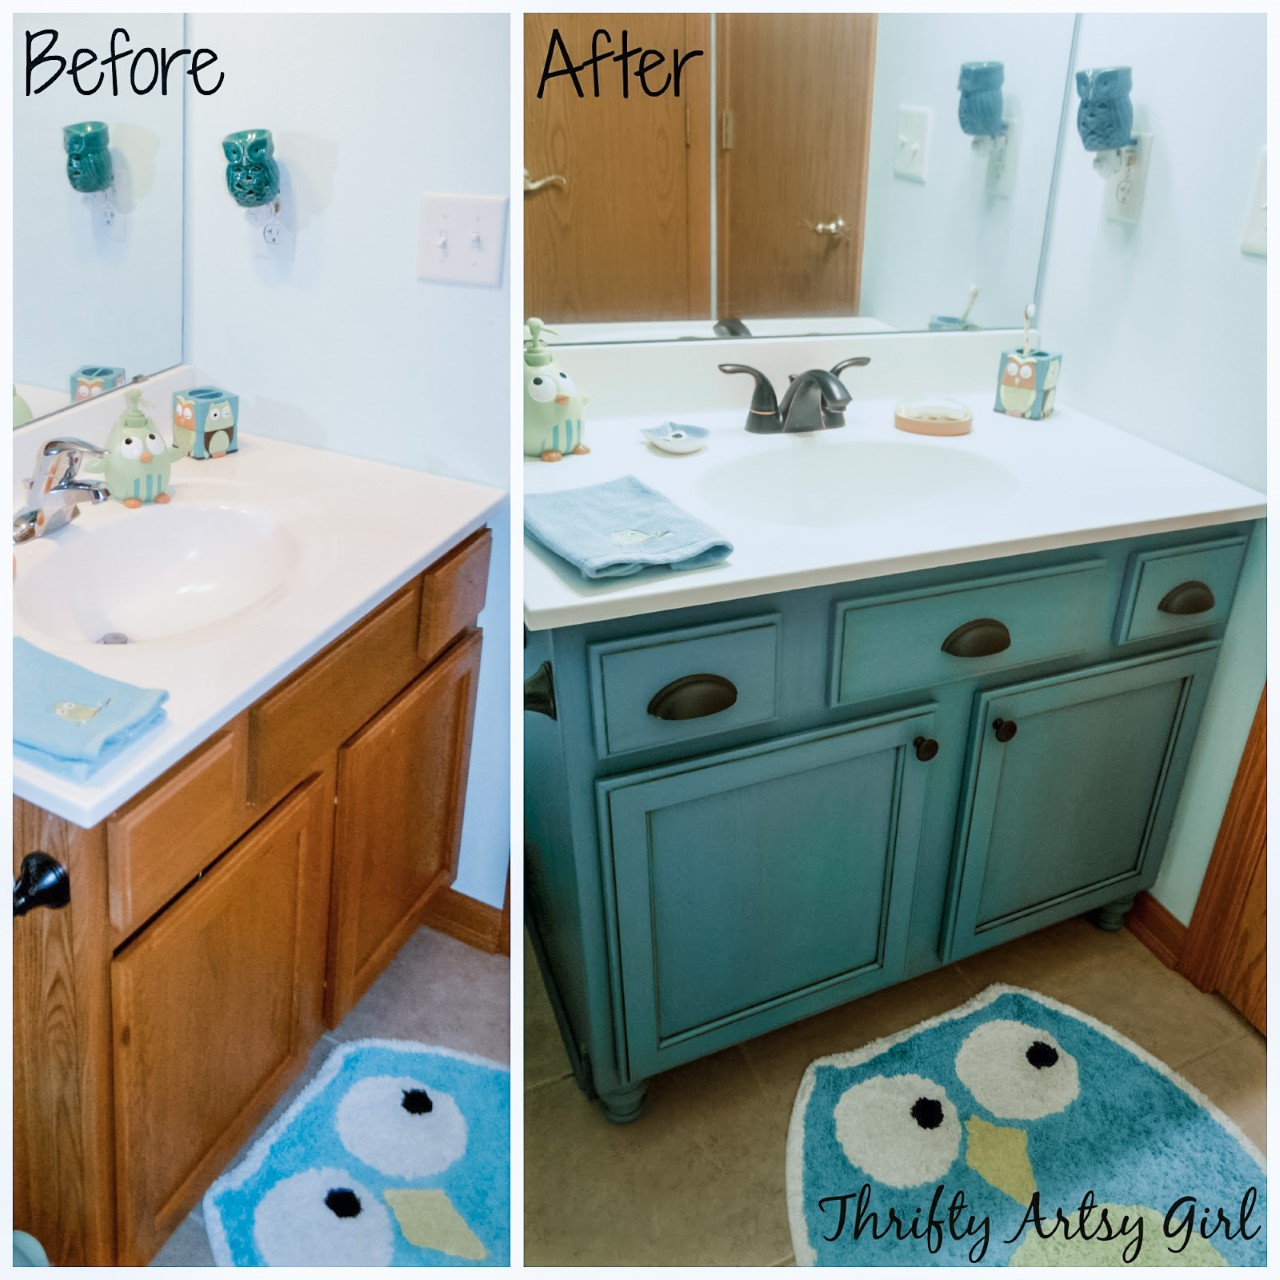 Thrifty Artsy Girl Builders Grade Teal Bathroom Vanity And Faucet Upgrade For Only 60